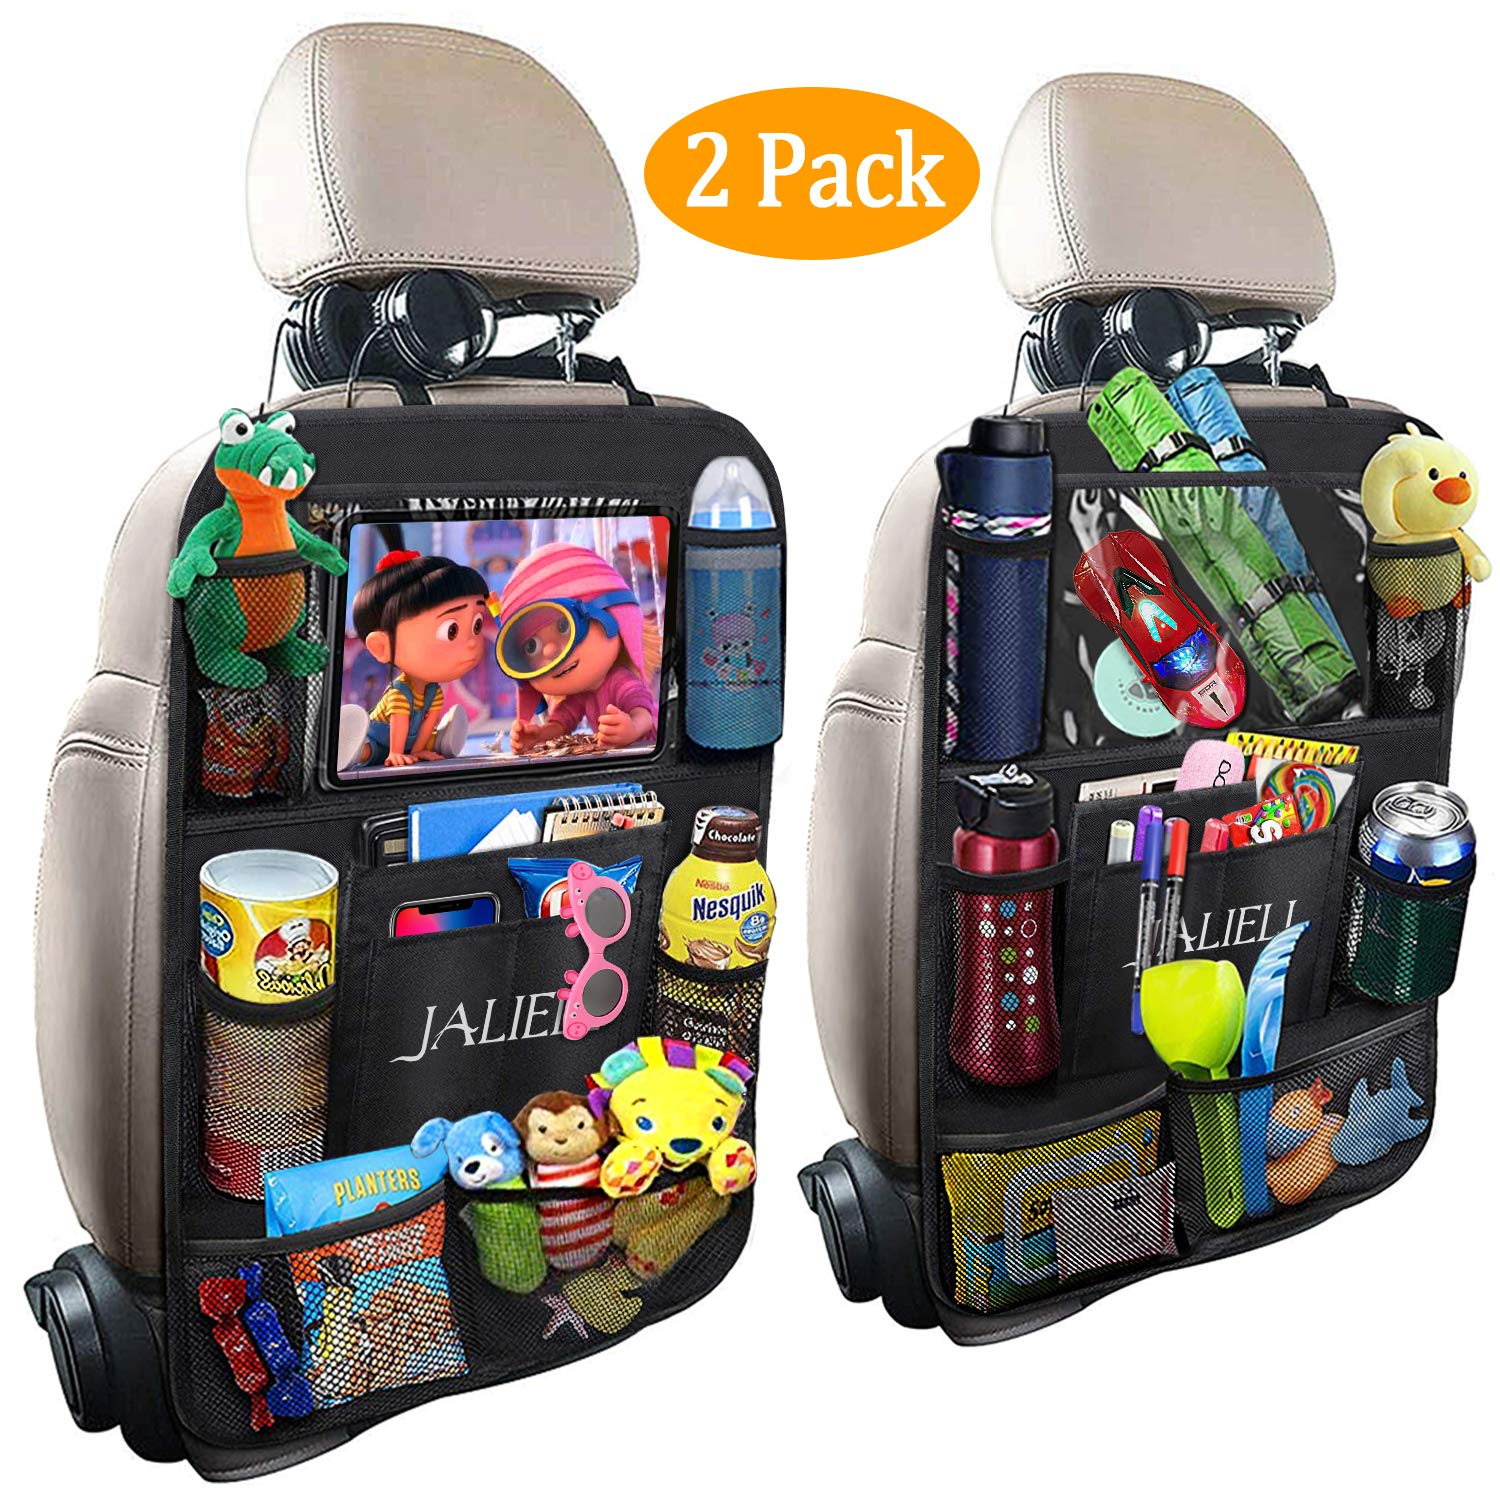 JALIELL Car Back Seat Organizer for Kids Car Organizer Kick Mats with 10'' Touch Screen Tablet Holder + 9 Storage Pockets Car Back Seat Protector Car Travel Accessories for Toddlers Toys (2 Pack) by JALIELL